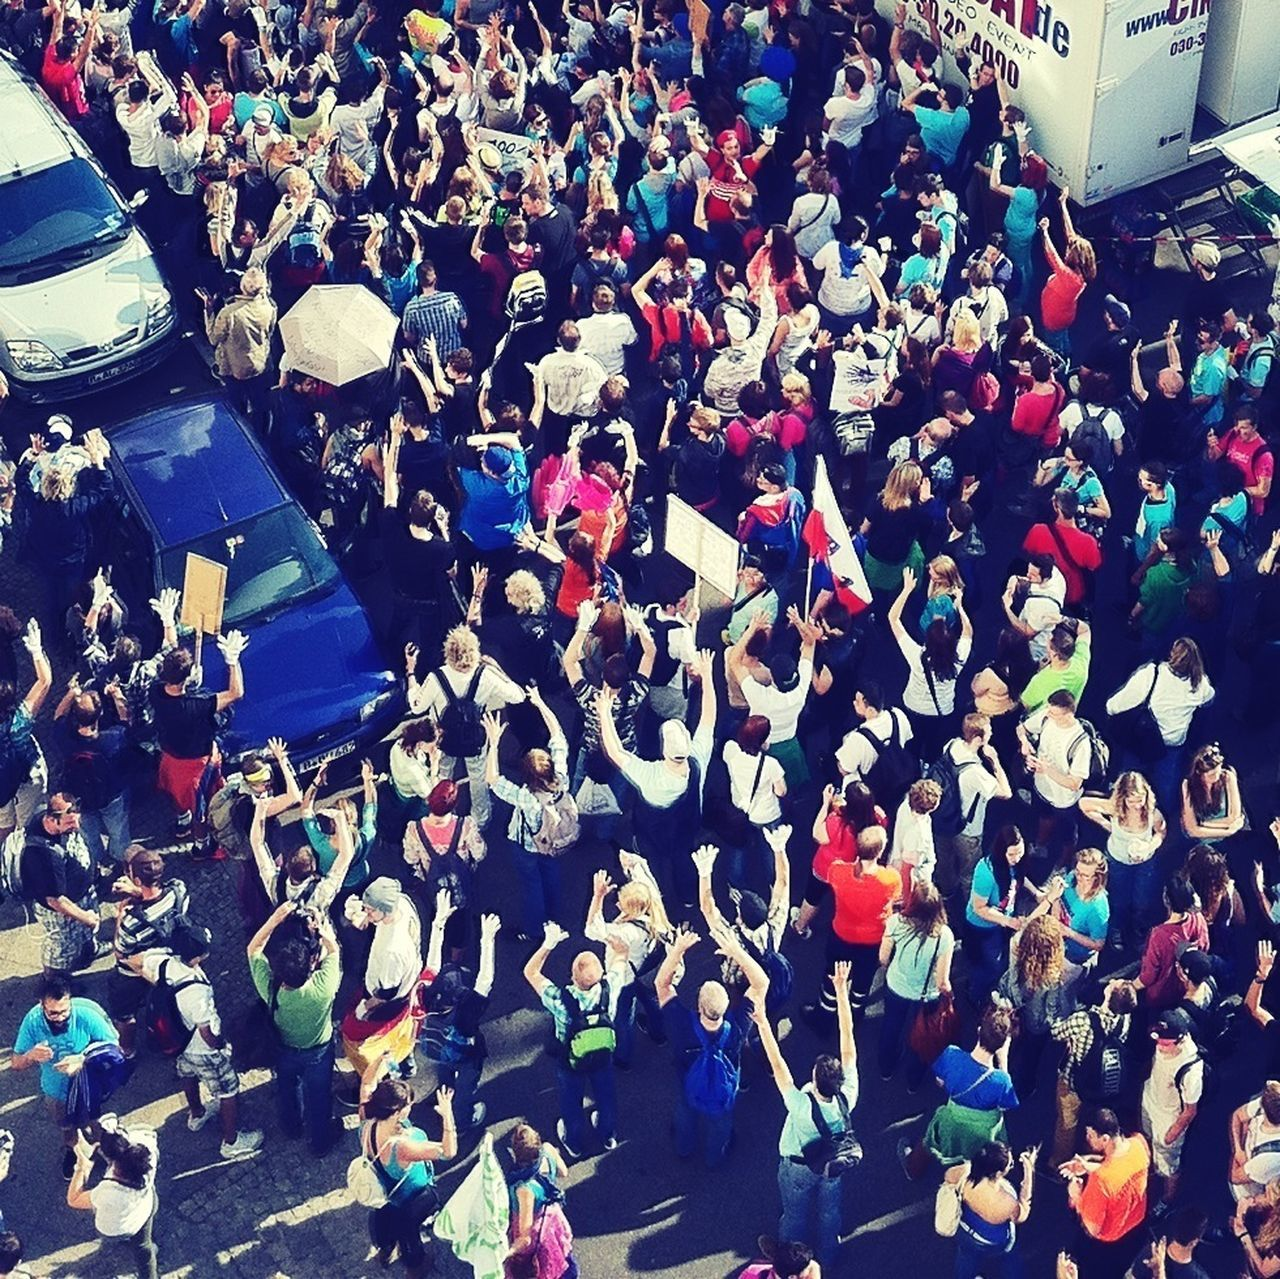 Overhead view of large group of people on road